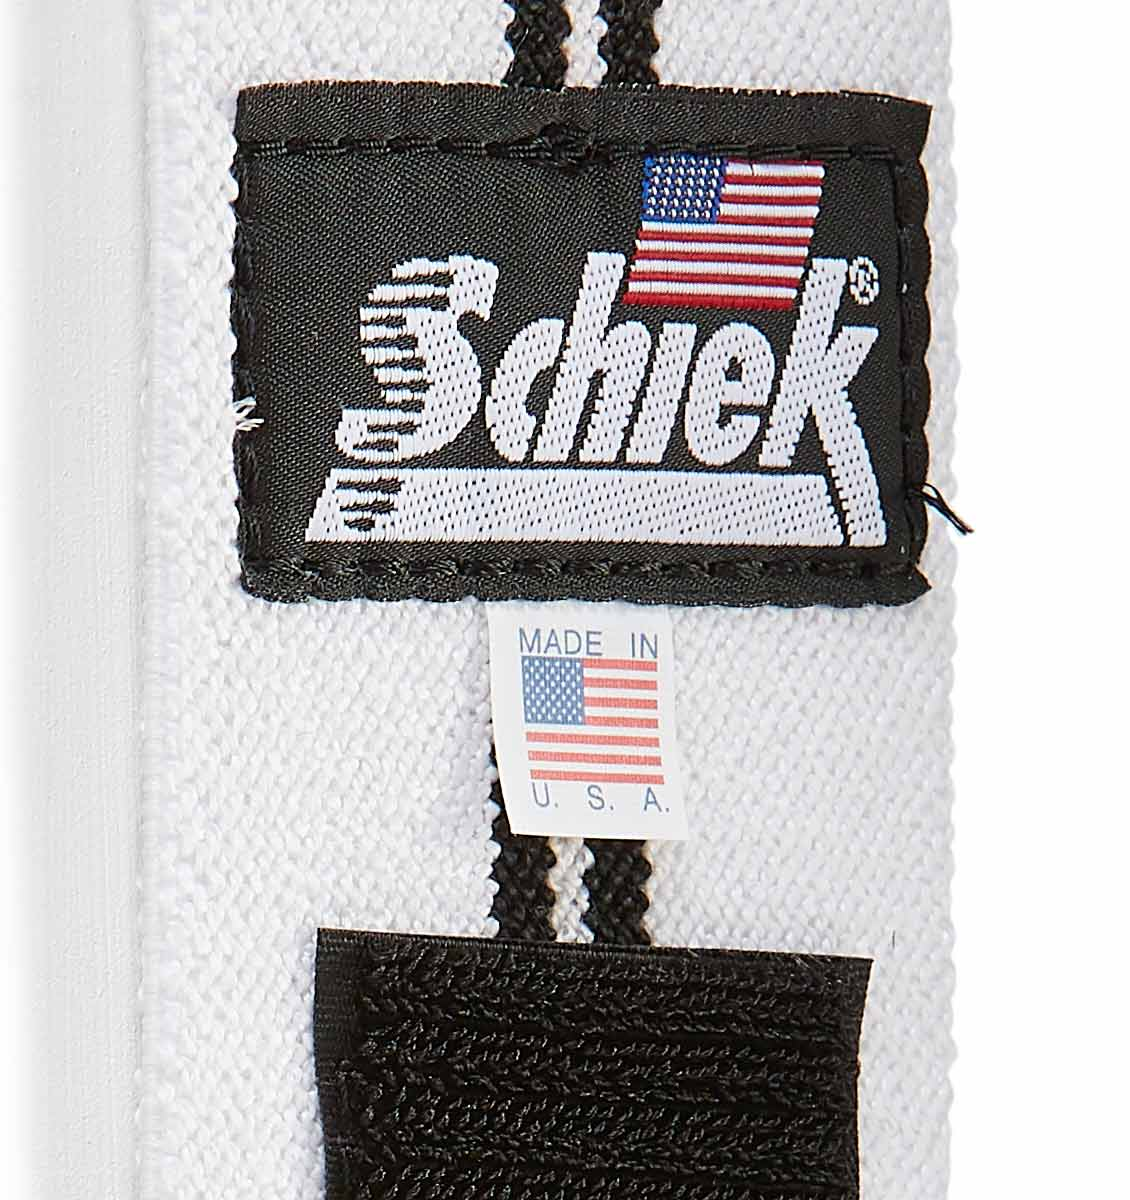 1124W Schiek Wrist Wraps Straps White 24 inch Material Close Up